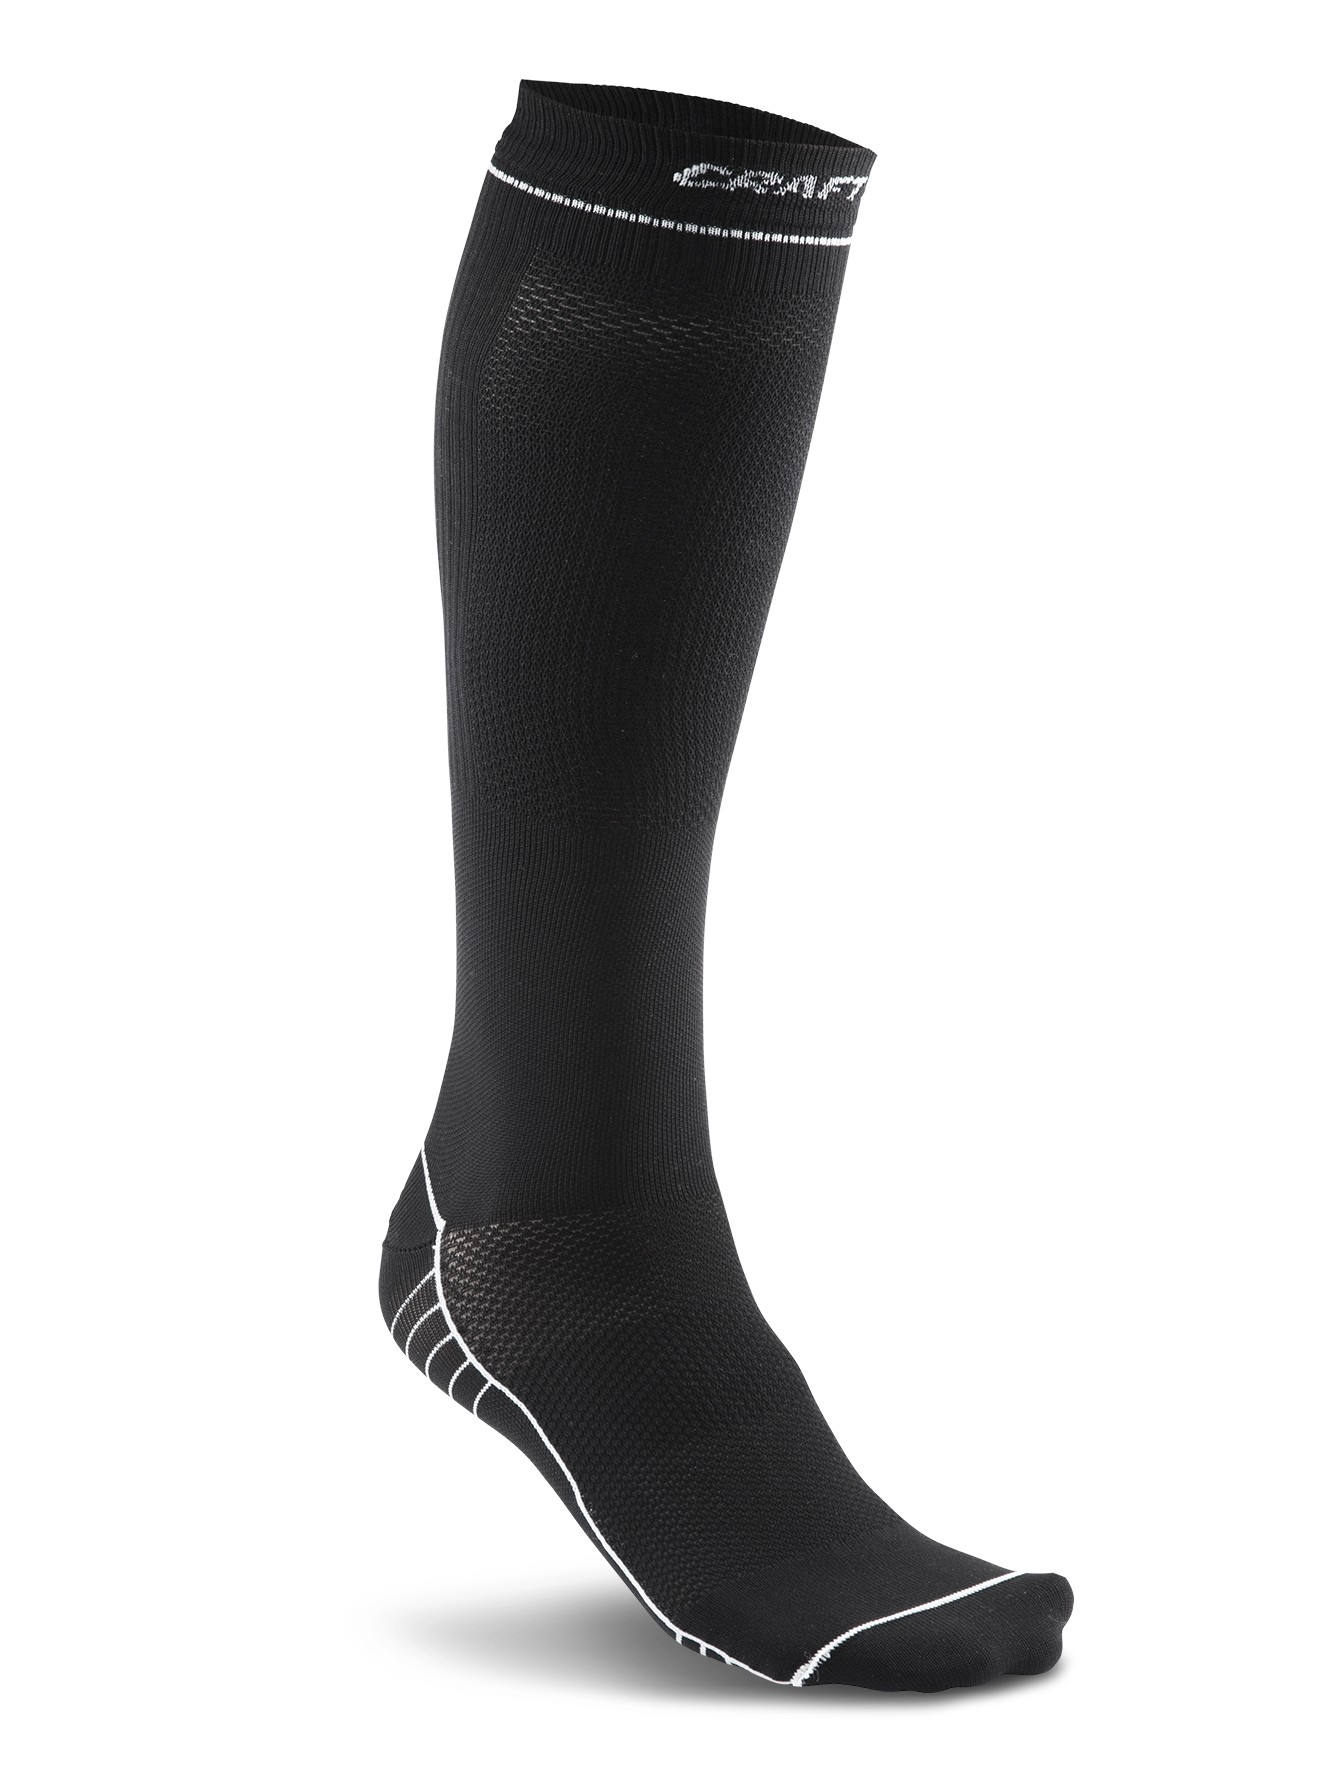 Craft Compression Sock - skarpetka sportowa - czarne SS16